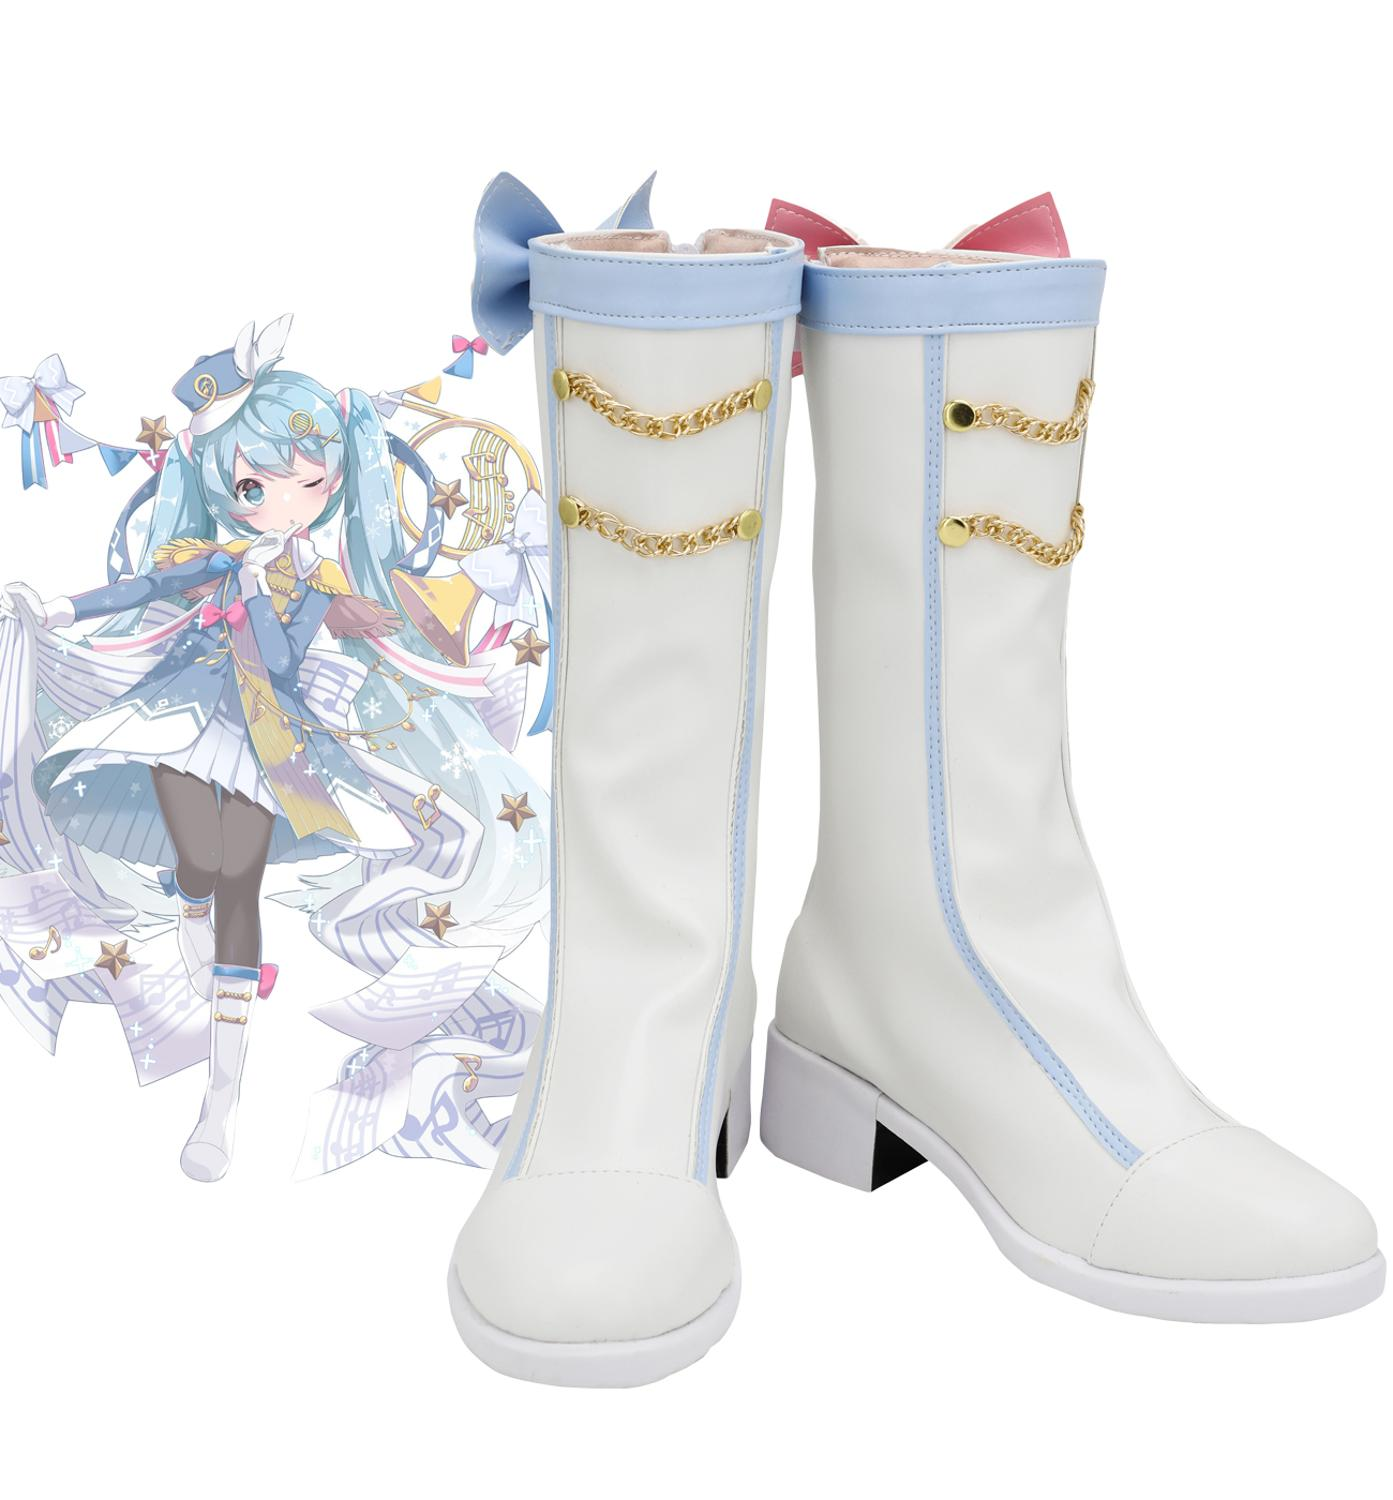 Vocaloid Snow Miku 2020 Cosplay Boots White Shoes Custom Made Any  Size for Halloween Party Cosplay AccessoriesShoes